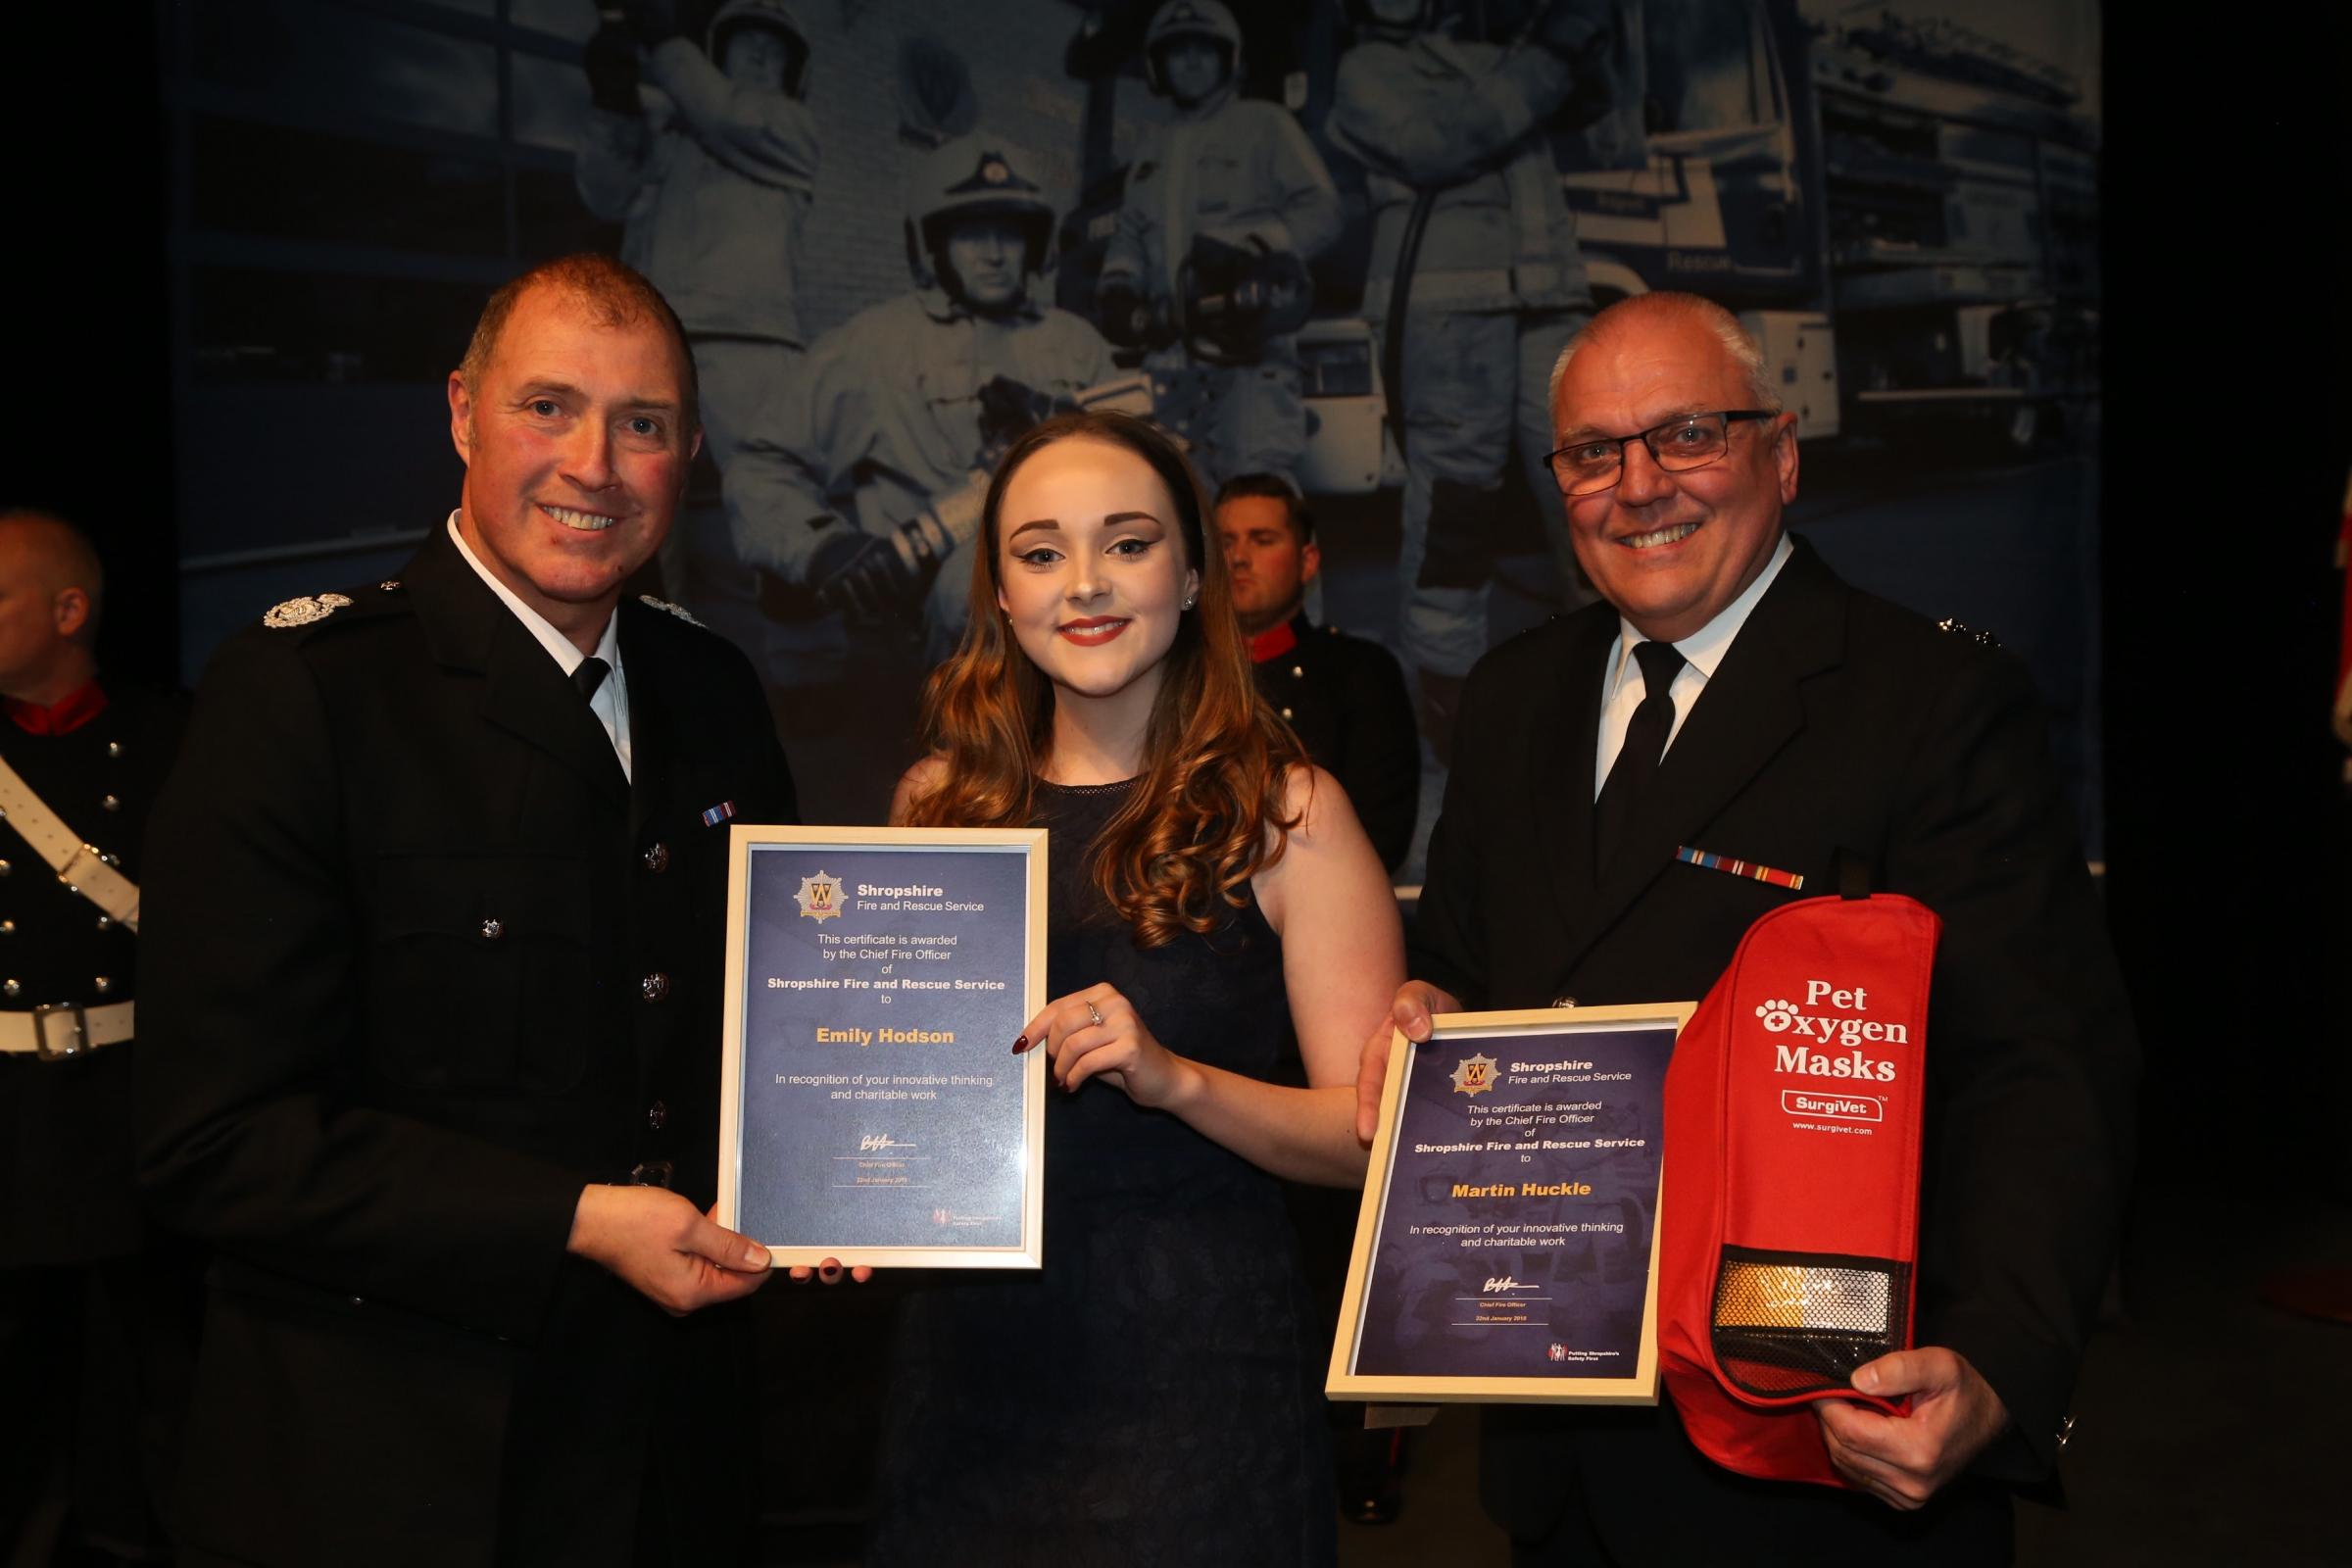 Watch manager Martin Huckle and technical support officer Emily Hodson receive an award from Shropshire's assistant chief fire officer Dave Myers for raising funds for pet oxygen masks for firefighters